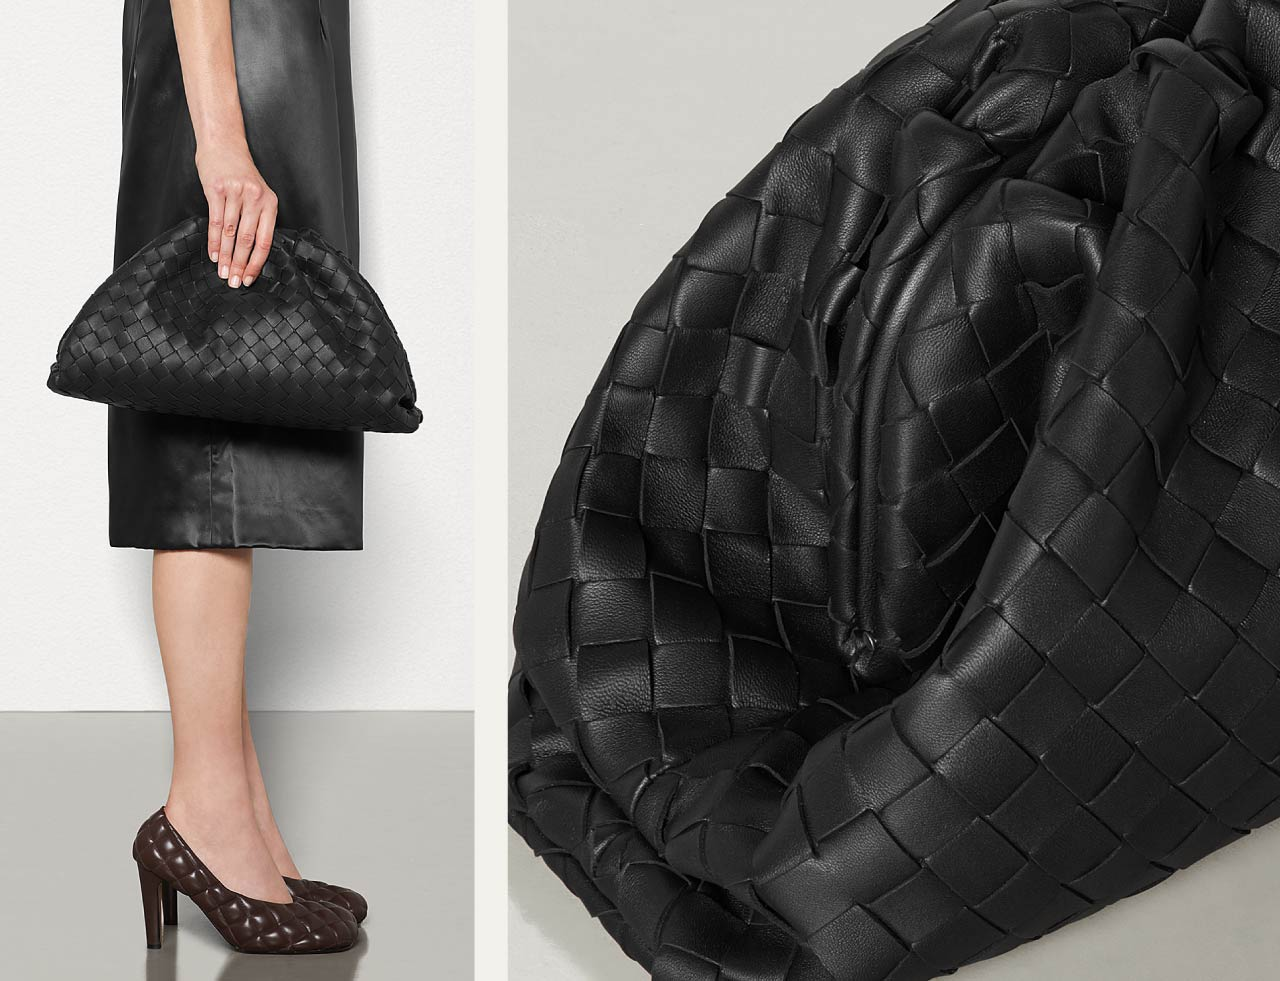 Bottega Veneta Intrecciato Weave | The Cutting Class. The Pouch bag in Nero.